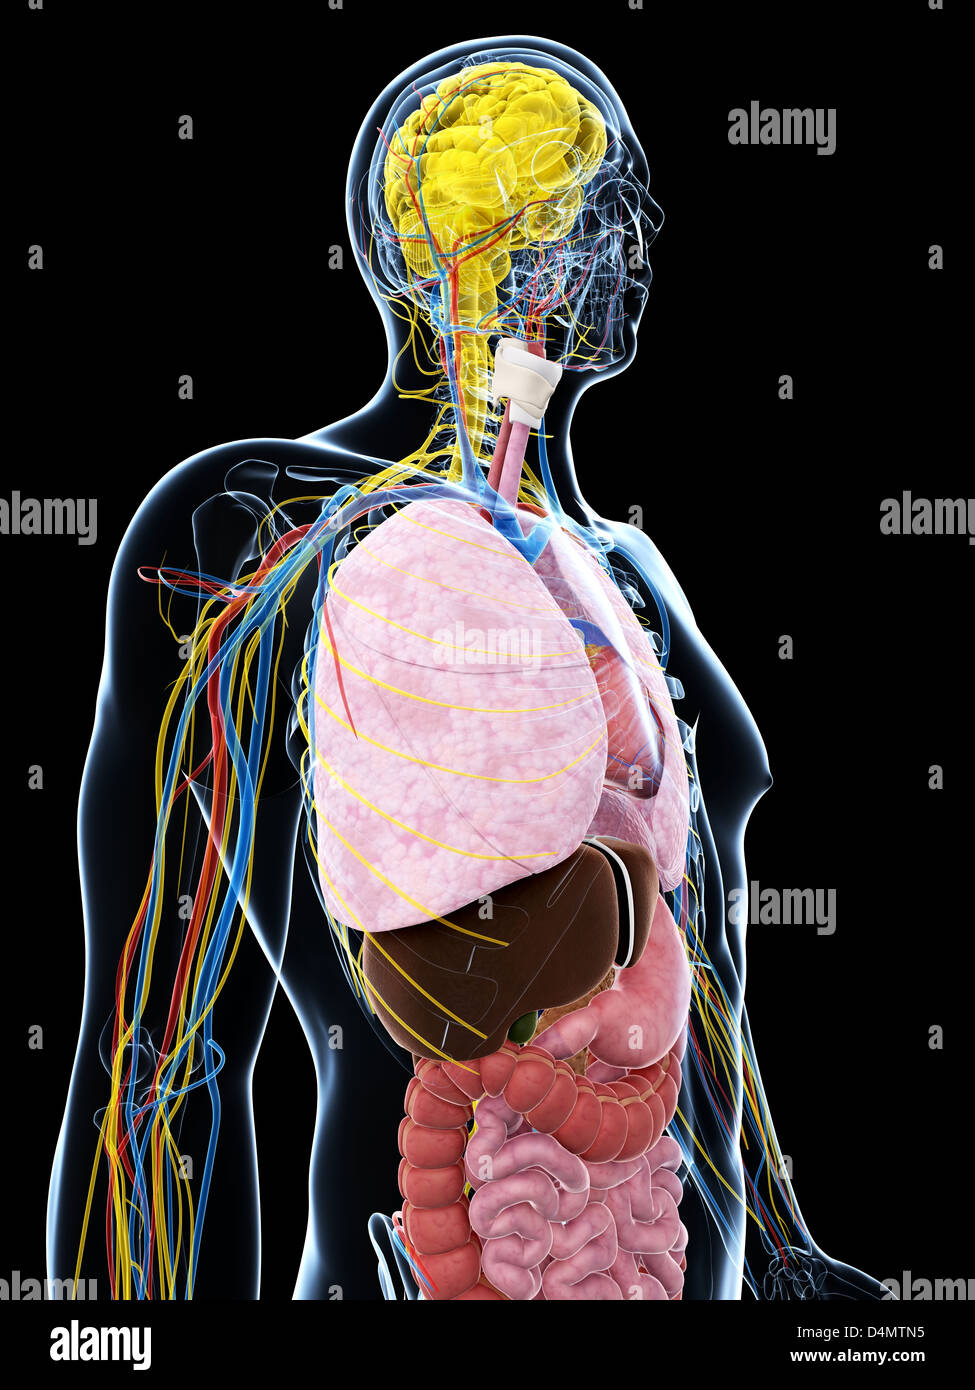 Anatomie Masculine Photo anatomie masculine banque d'images, photo stock: 54548177 - alamy